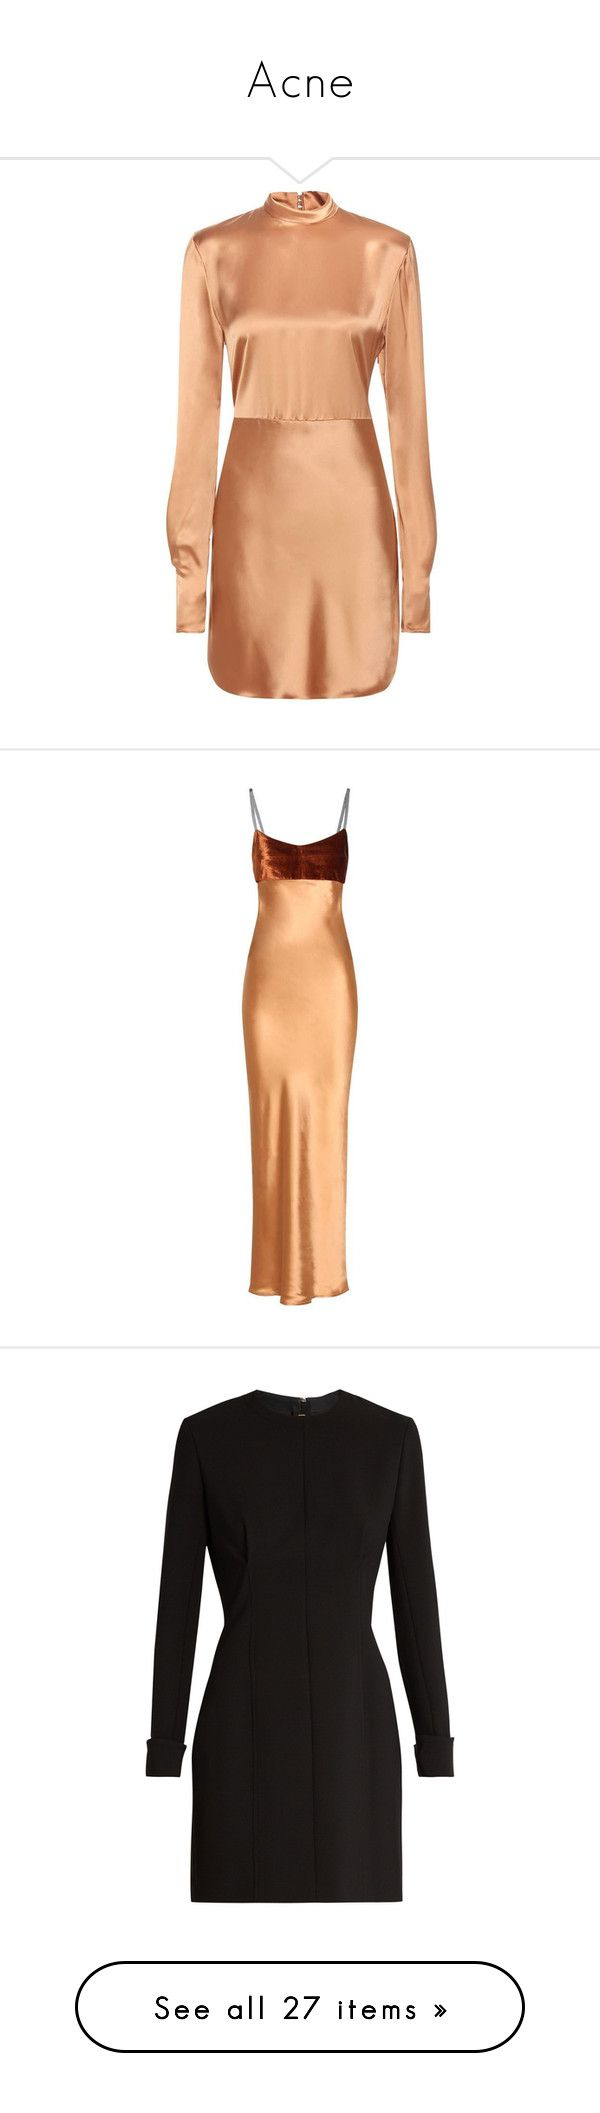 """""""Acne"""" by evalevmar ❤ liked on Polyvore featuring dresses, платья, beige, red satin cocktail dress, beige cocktail dress, satin cocktail dress, beige dress, satin dress, gowns and long dresses"""